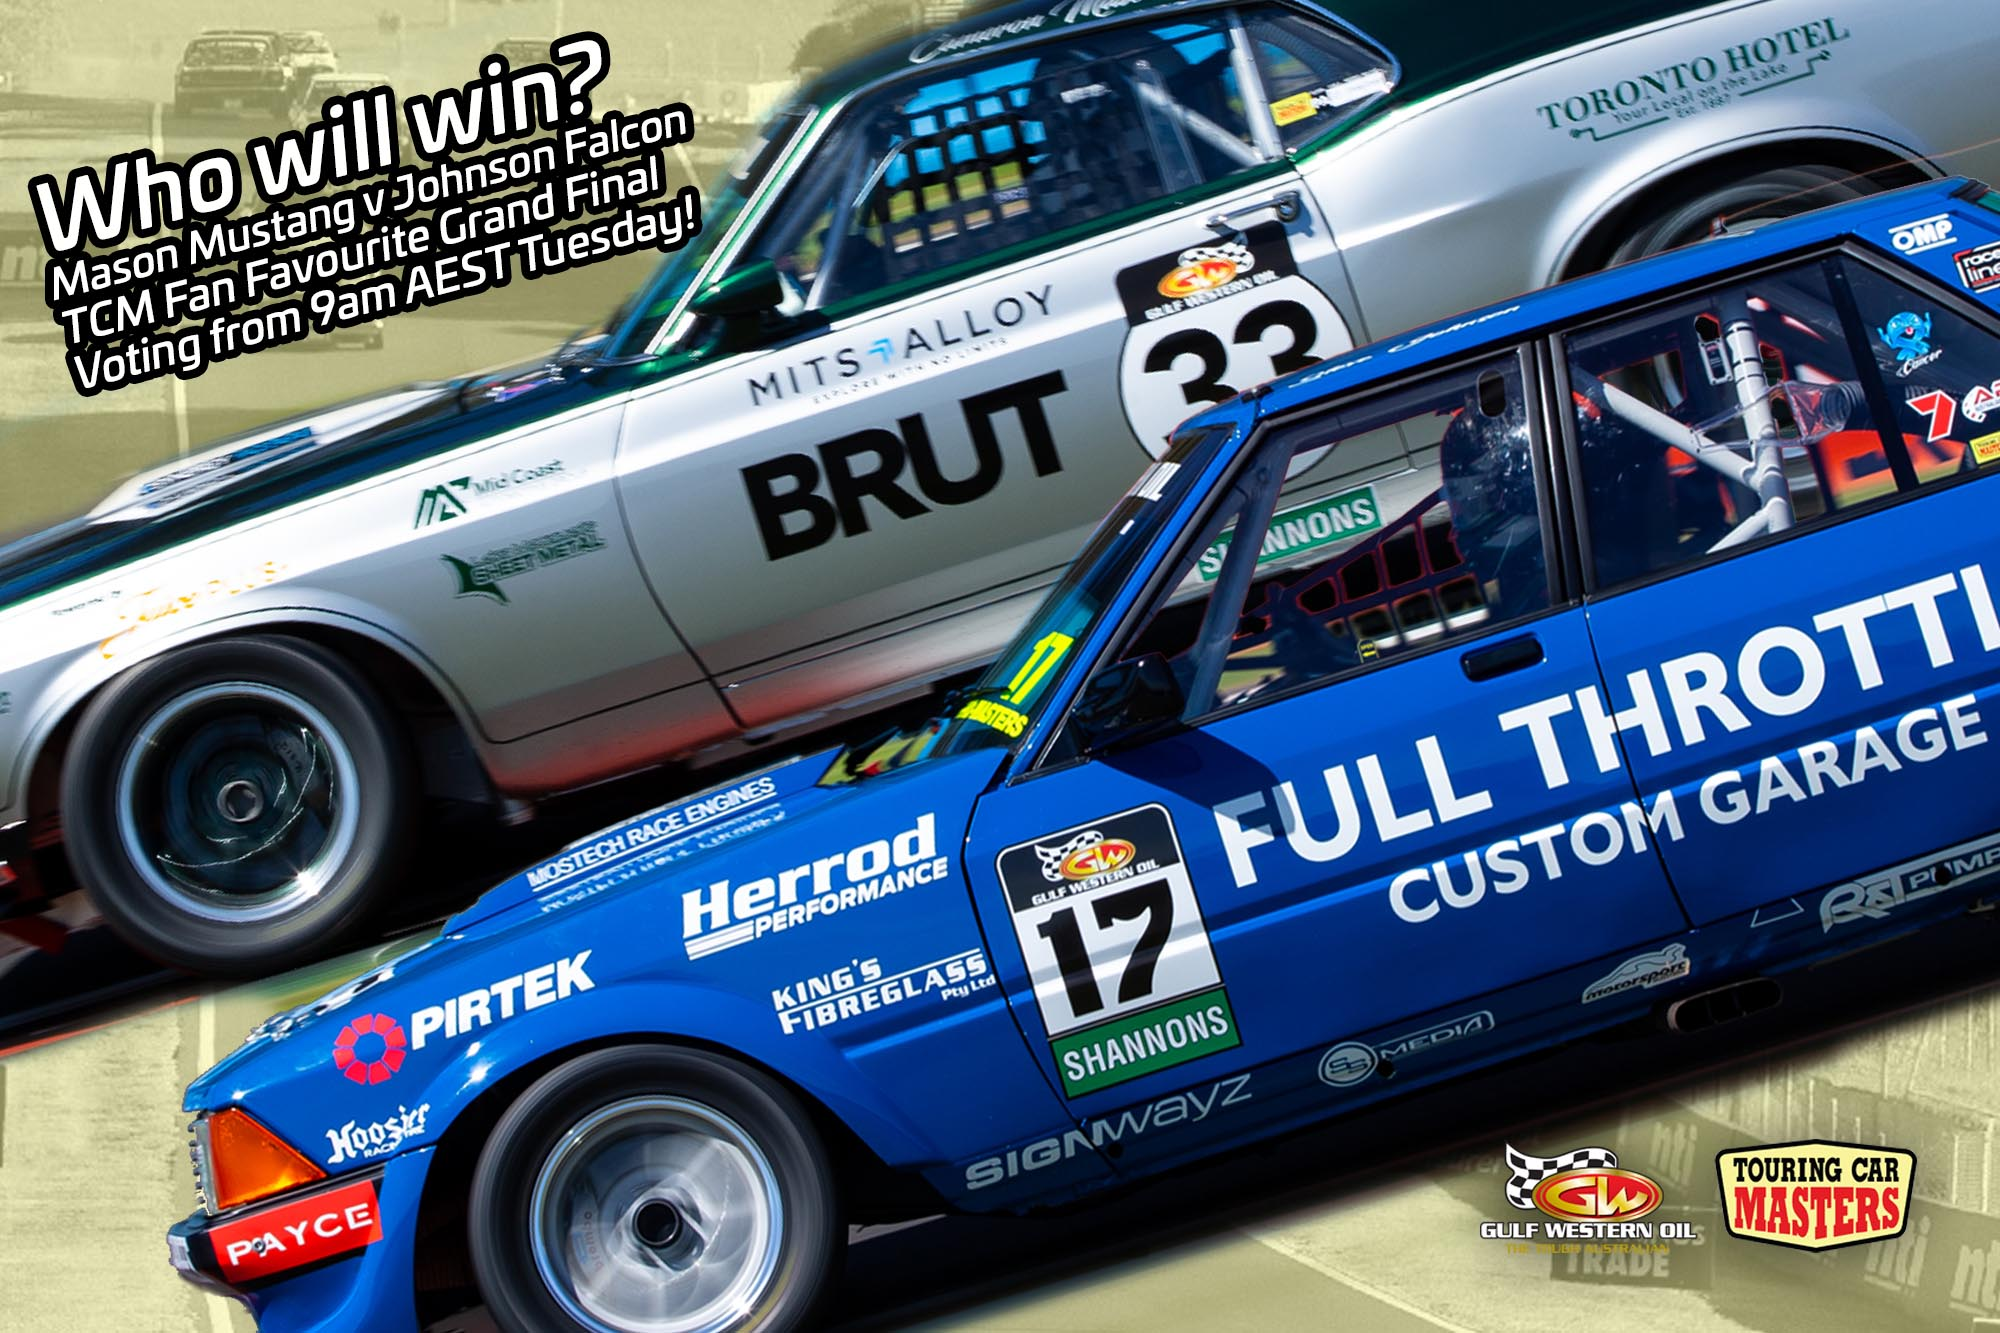 All Ford battle to decide fan-favourite TCM racer